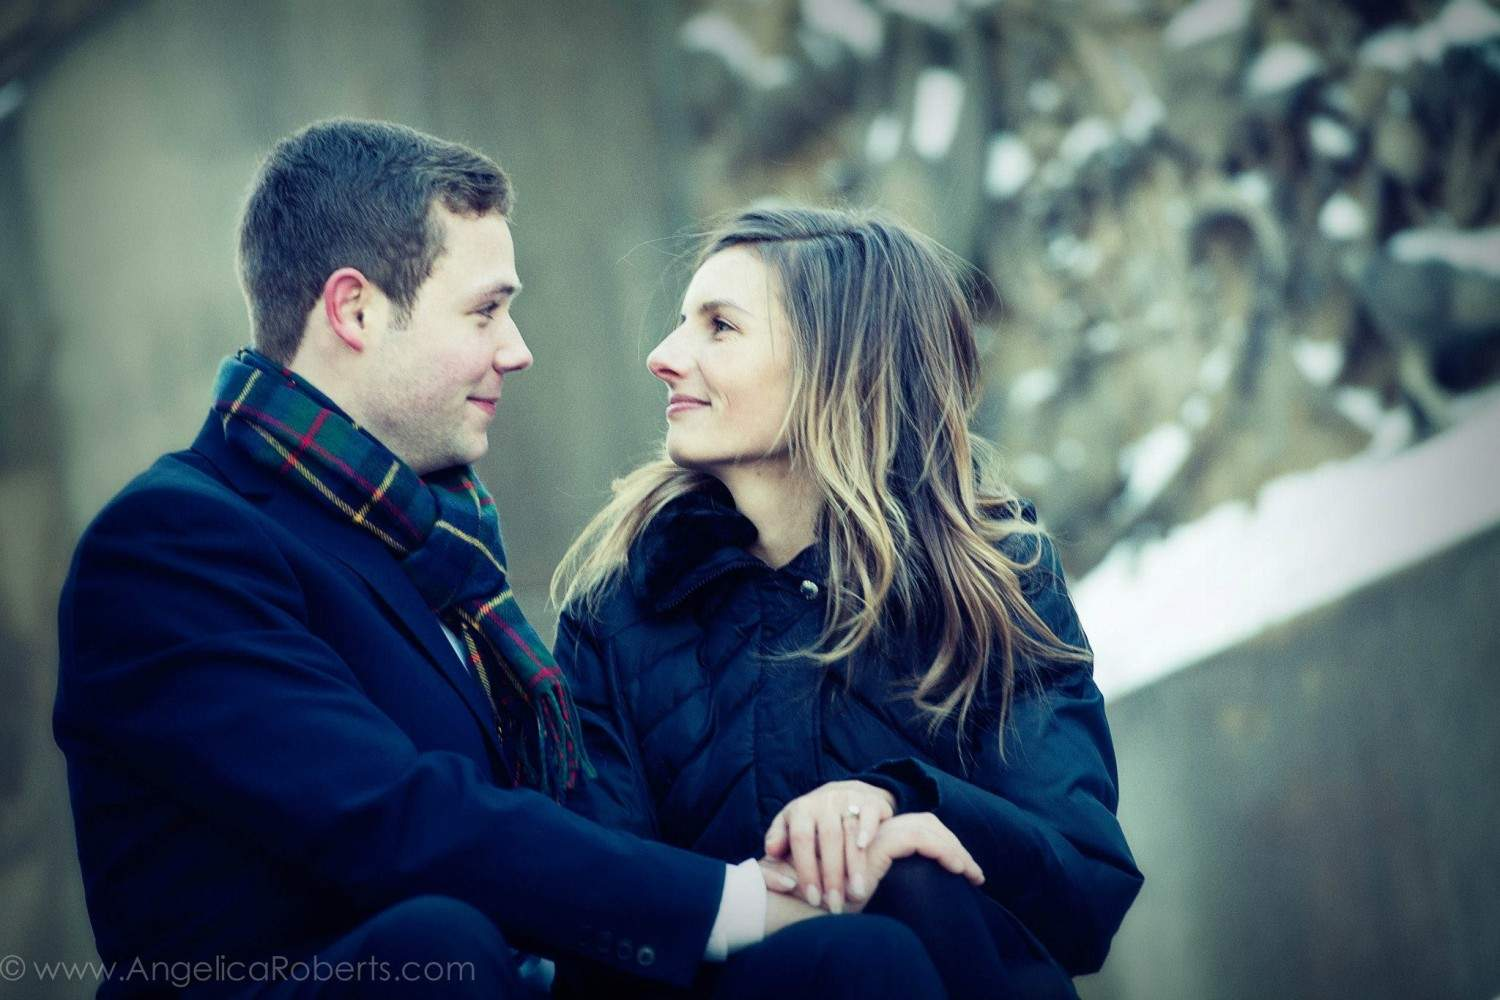 Angelica Roberts Photography - Central Park Engagement shoot 18